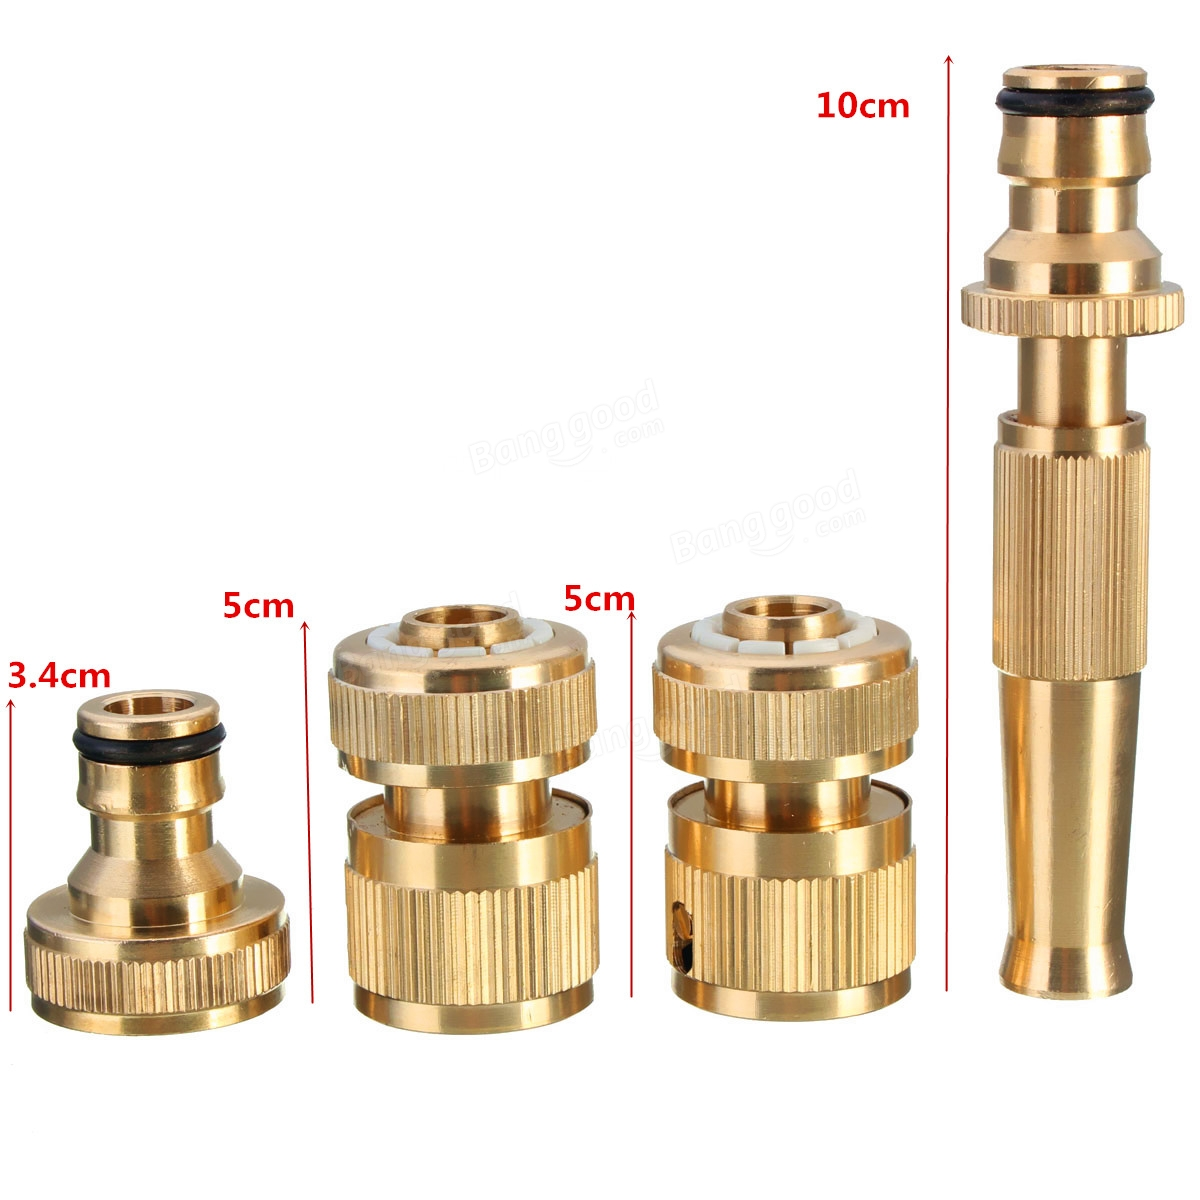 Pcs brass hose pipe connector irrigation tools garden tap